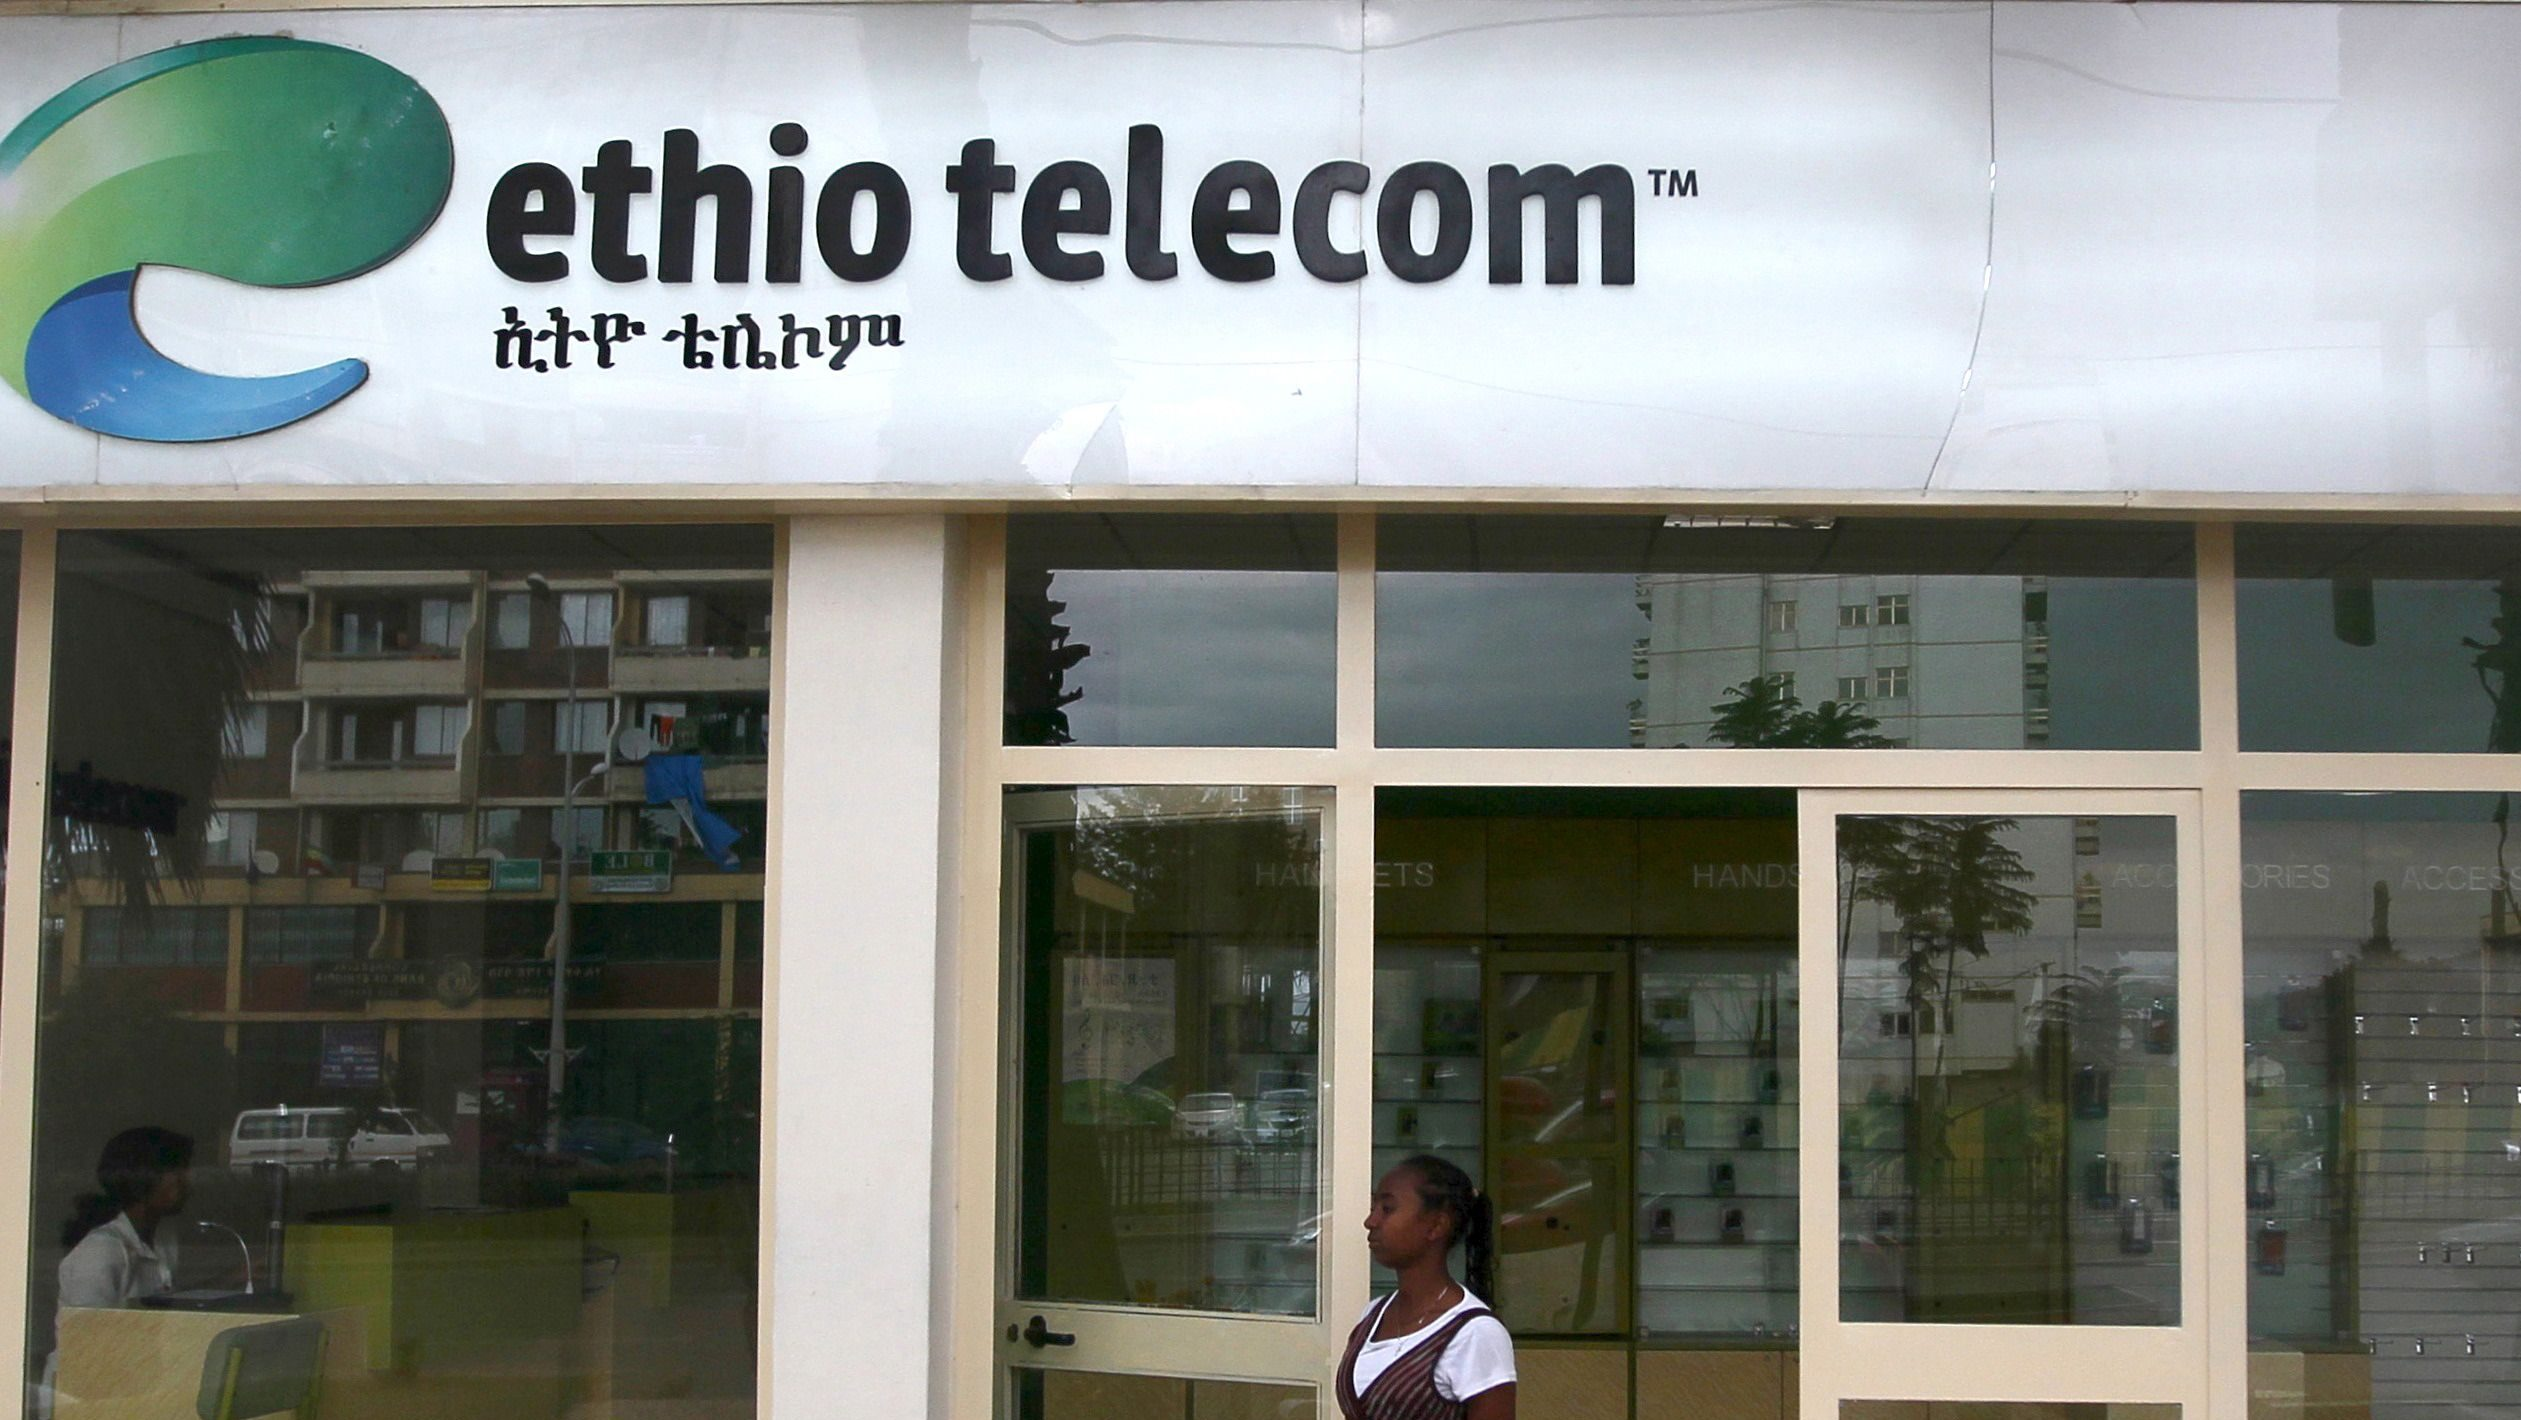 A woman walks past an Ethio Telecom office in Ethiopia's capital, Addis Ababa, November 9, 2015. Ethiopia's state-run telecoms monopoly will launch a tender in December or January to help the company upgrade infrastructure and expand its mobile phone coverage by about 72 percent, the company's chief executive said.